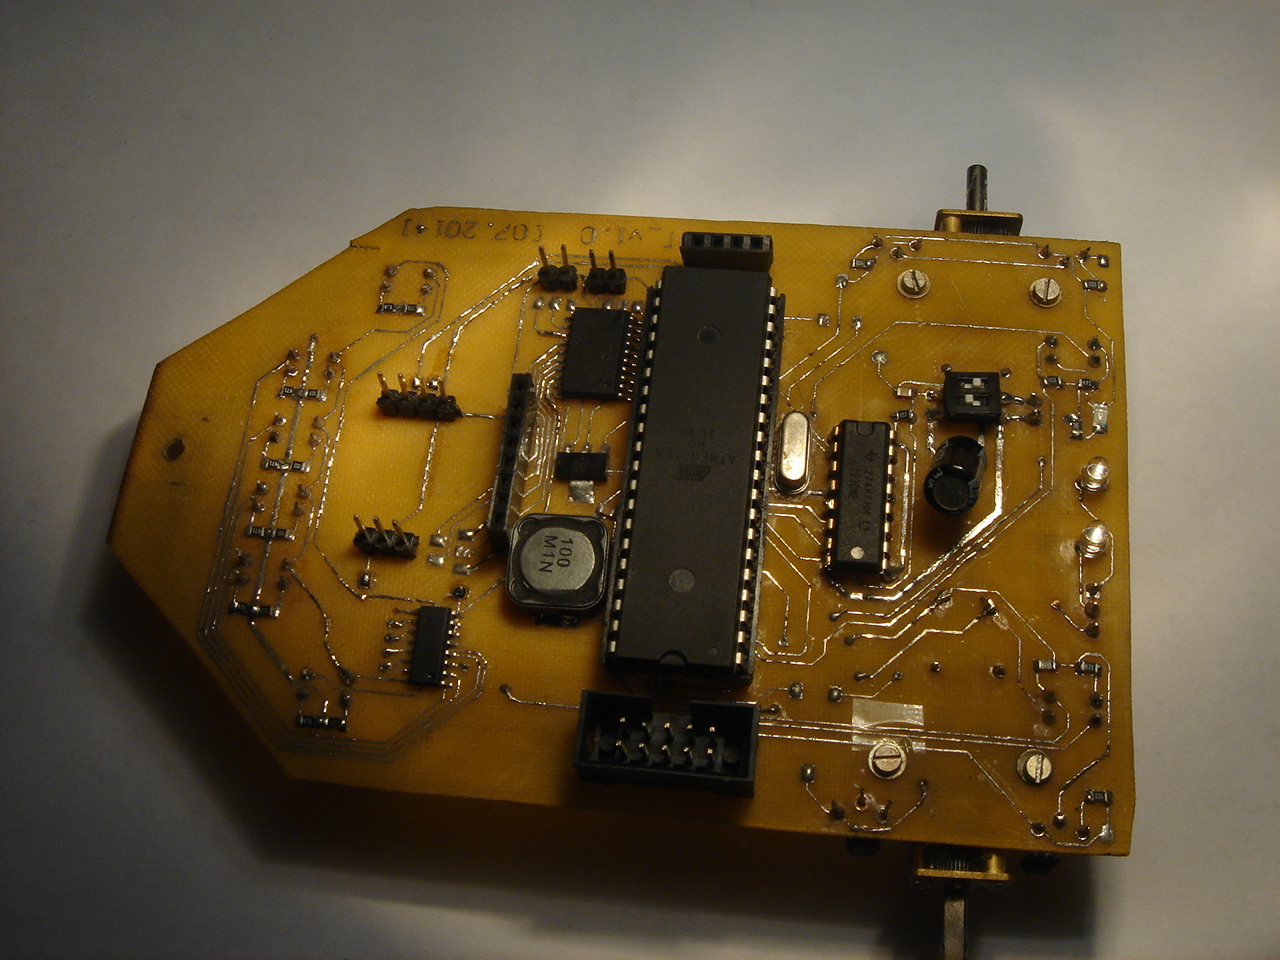 History Of Creation One More Robot Part Second Its Alive Circuit Board Last Has Ended What Before Us Ready Distributing The Printed Flaunted So It Is Time To Create And Transfer Our Idea From